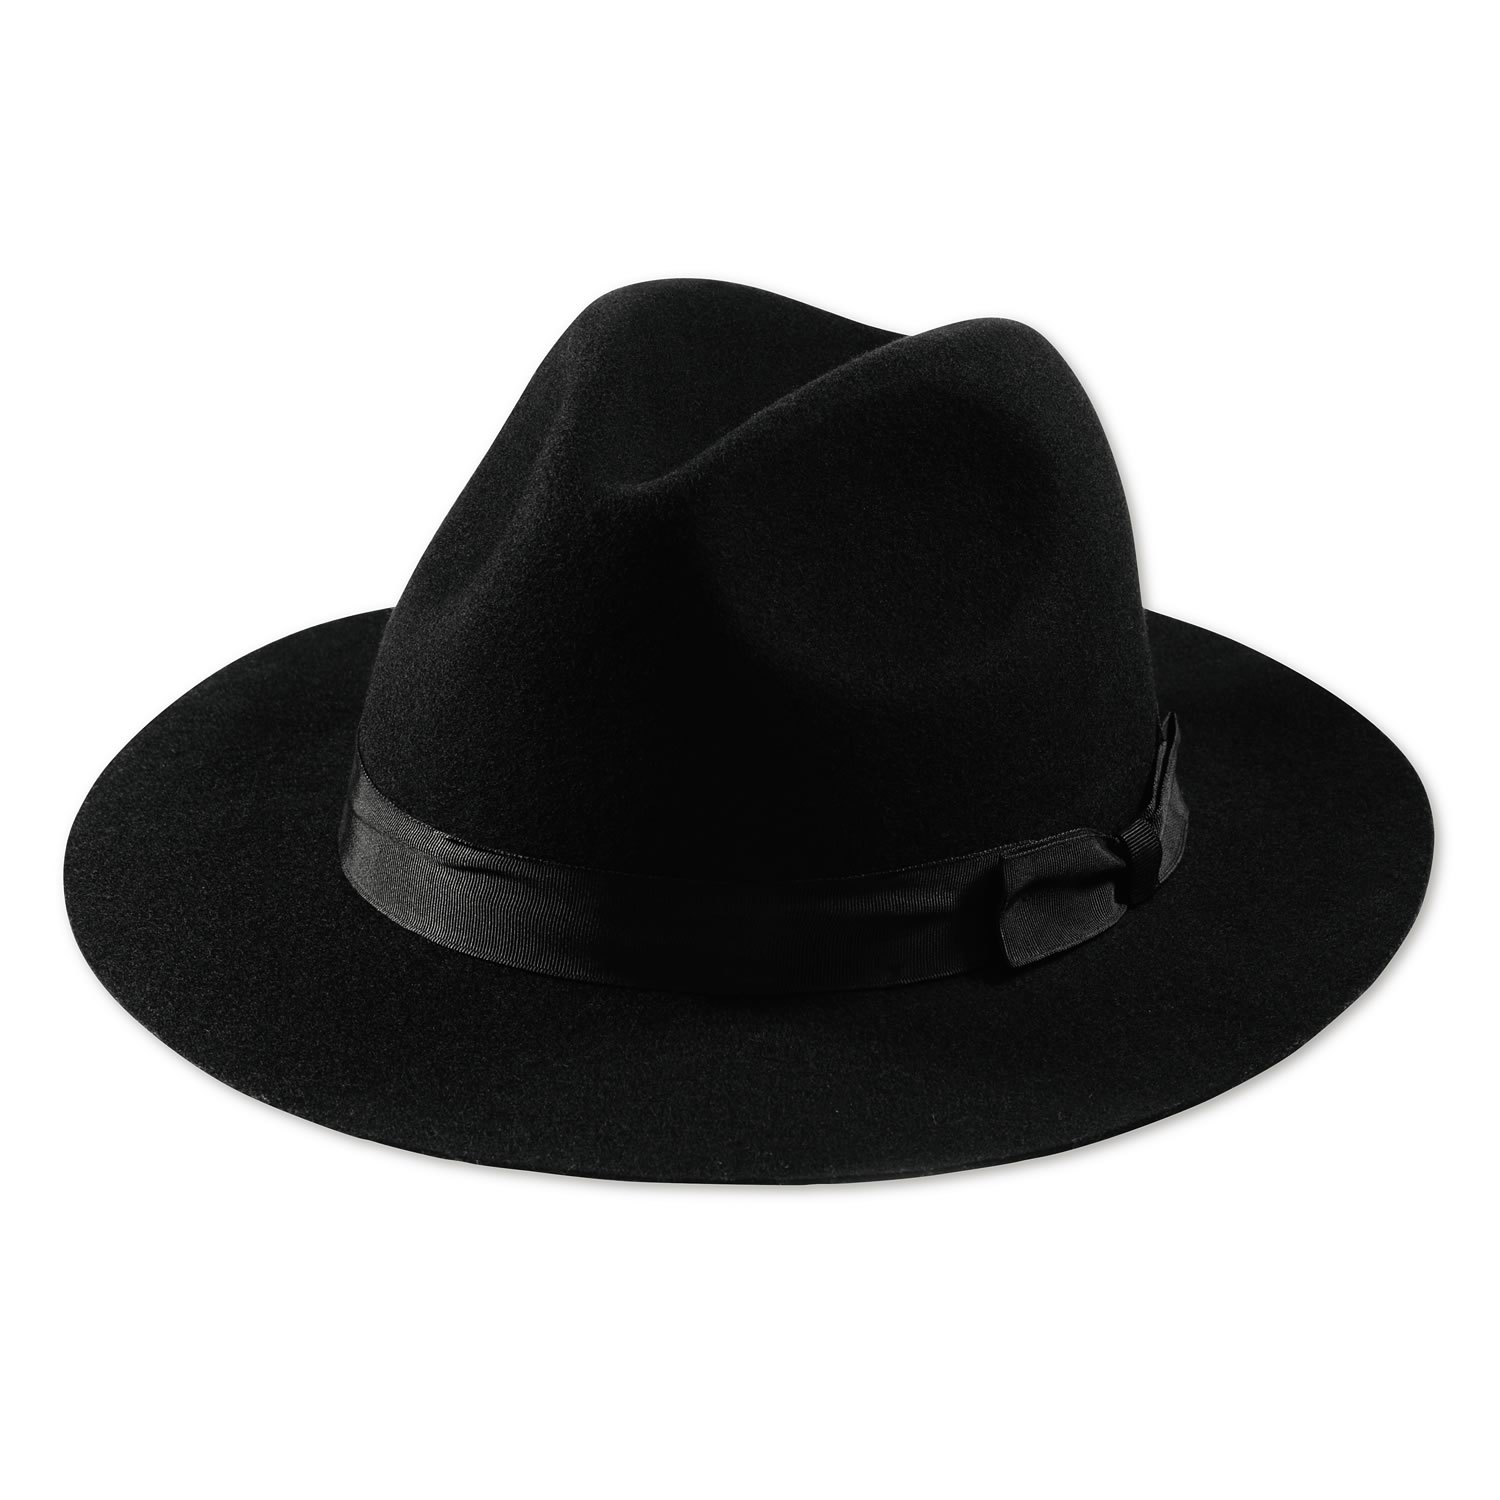 236d21b3 black fedora hat - Instylefashionista Women Clothing